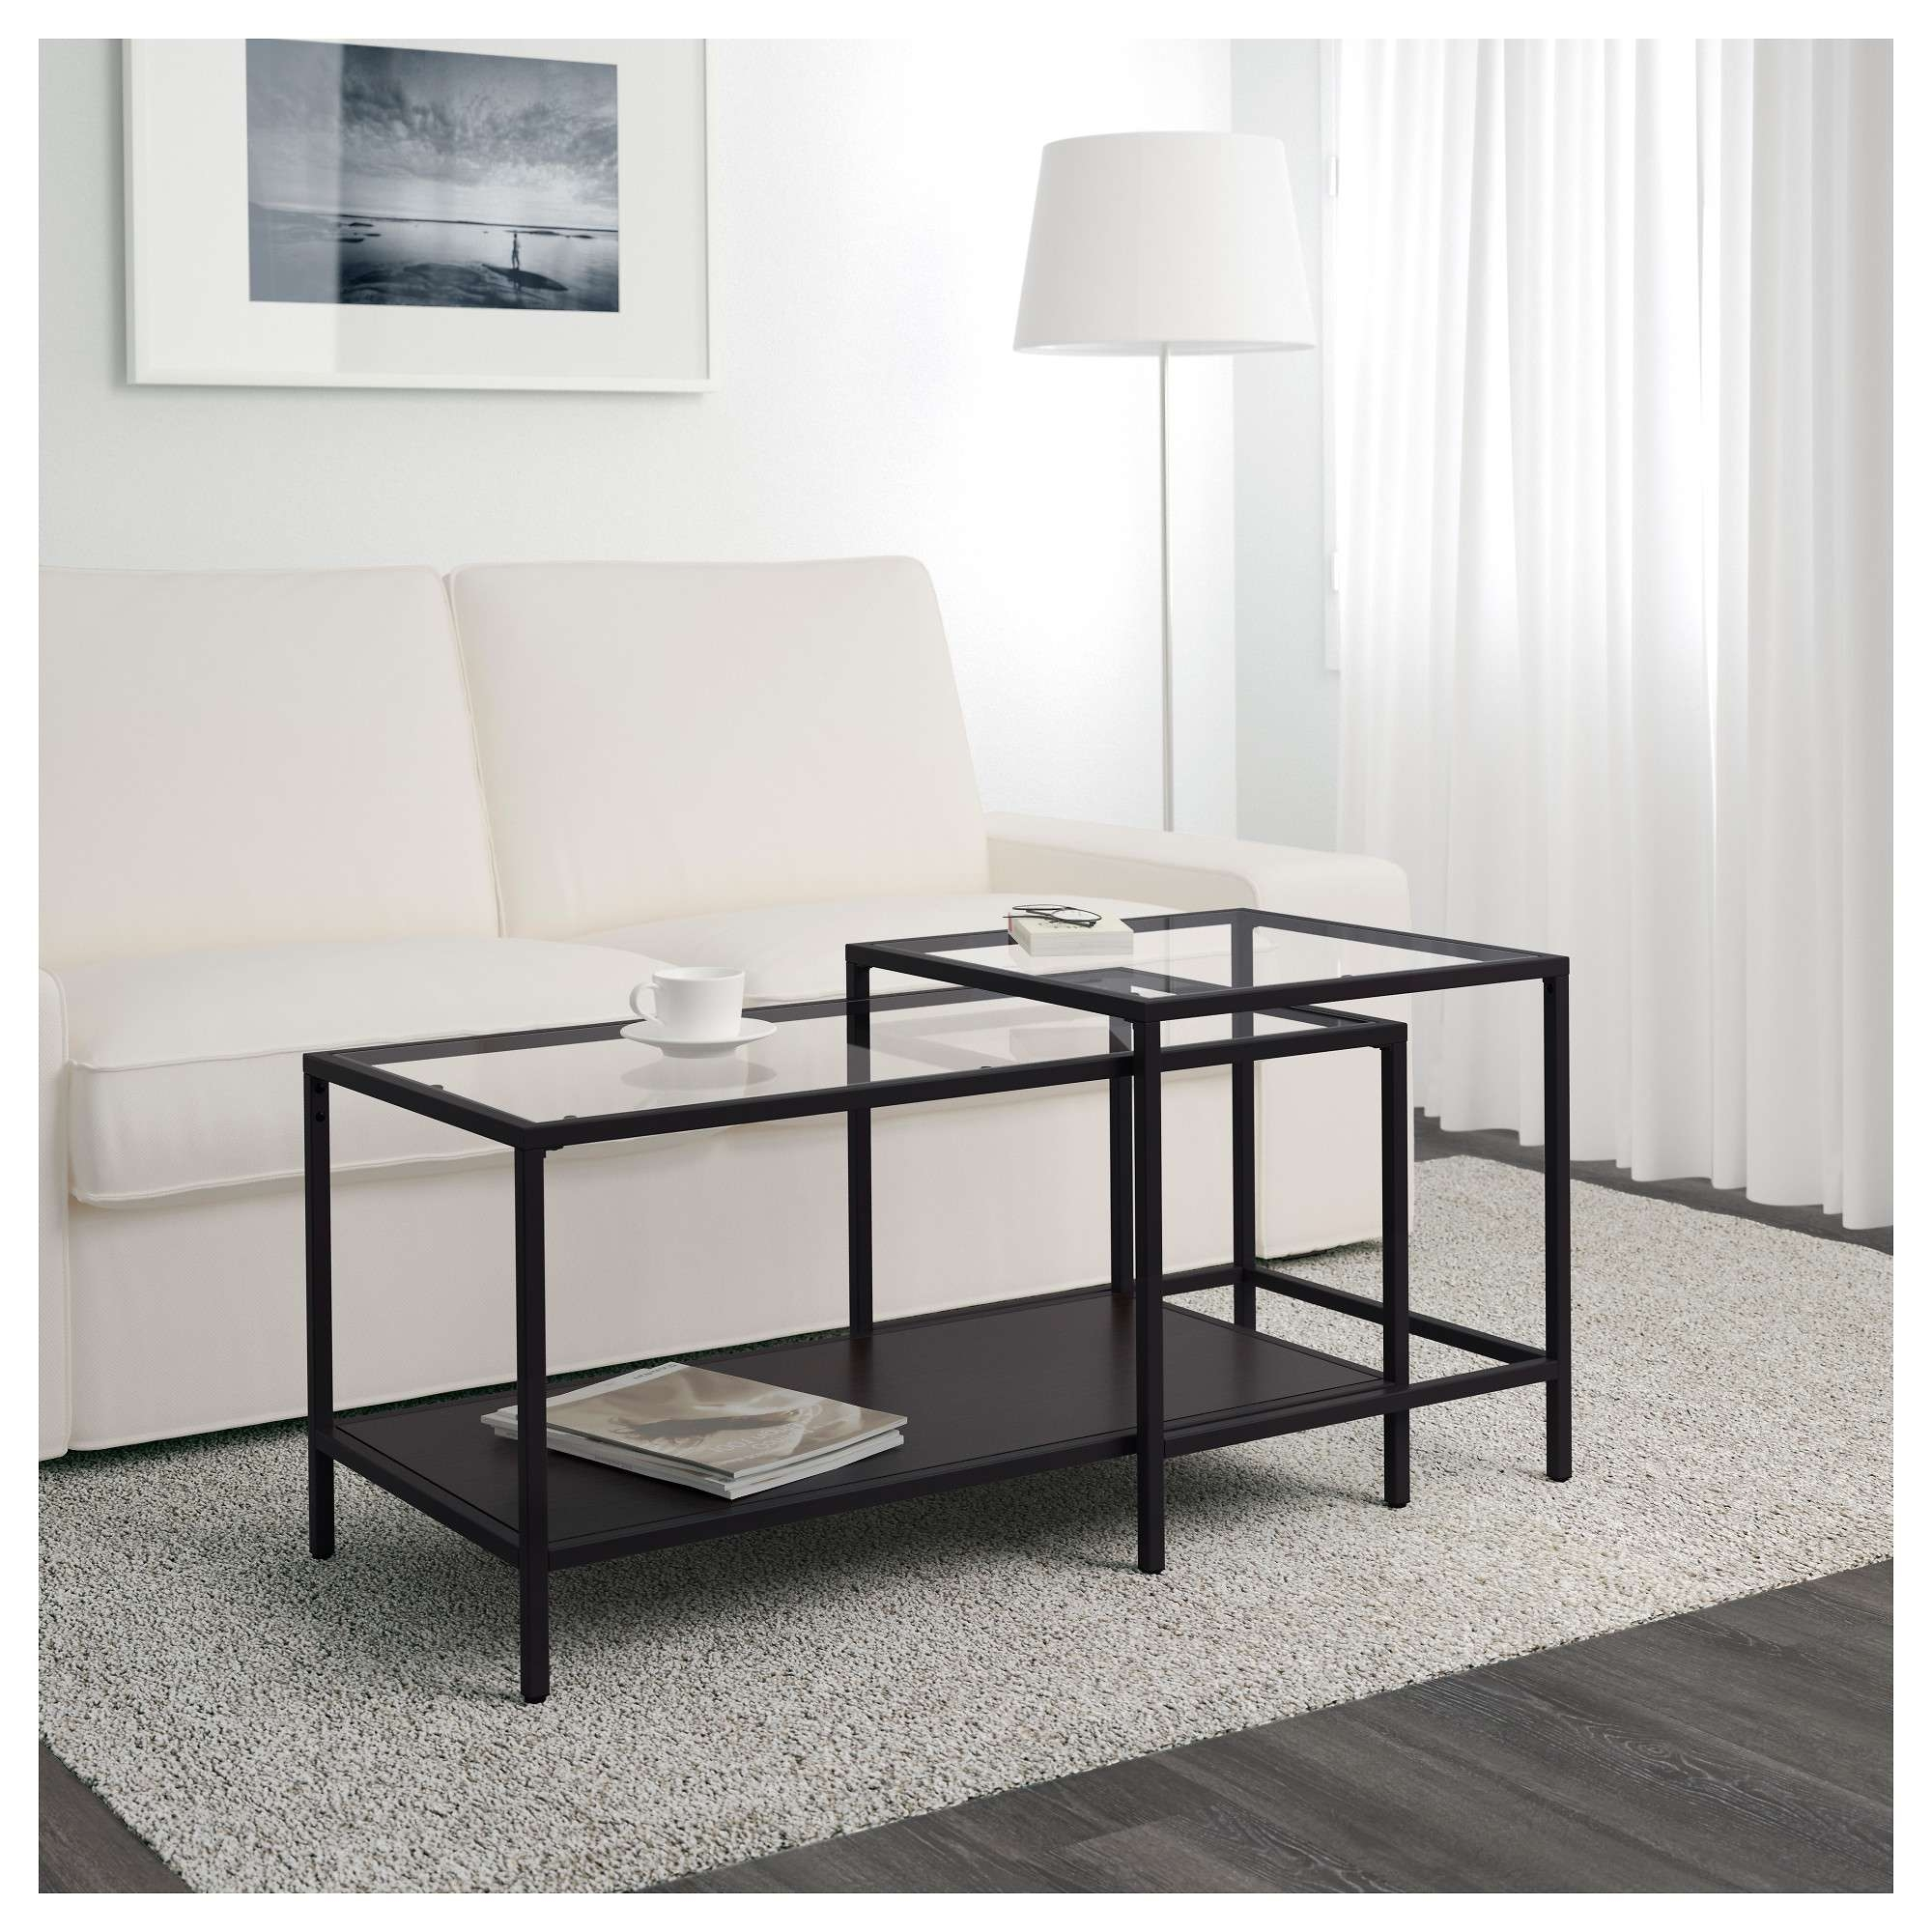 Well Liked 2 Piece Coffee Table Sets Regarding Vittsjö Nesting Tables, Set Of 2 – Black Brown/glass – Ikea (View 18 of 20)